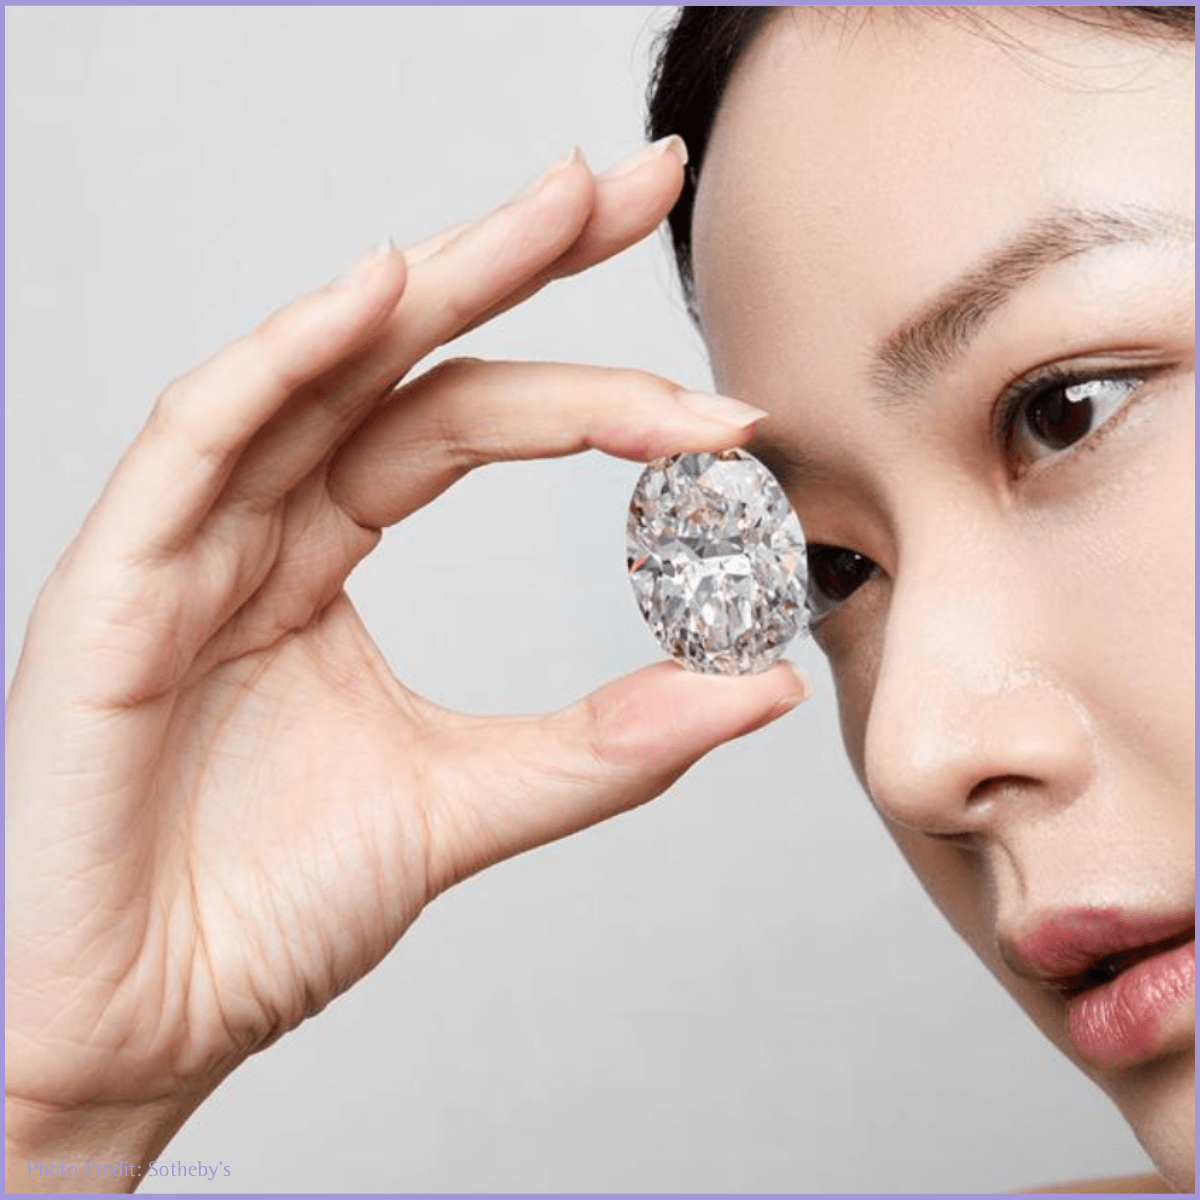 maiko star worlds larges rough diamond